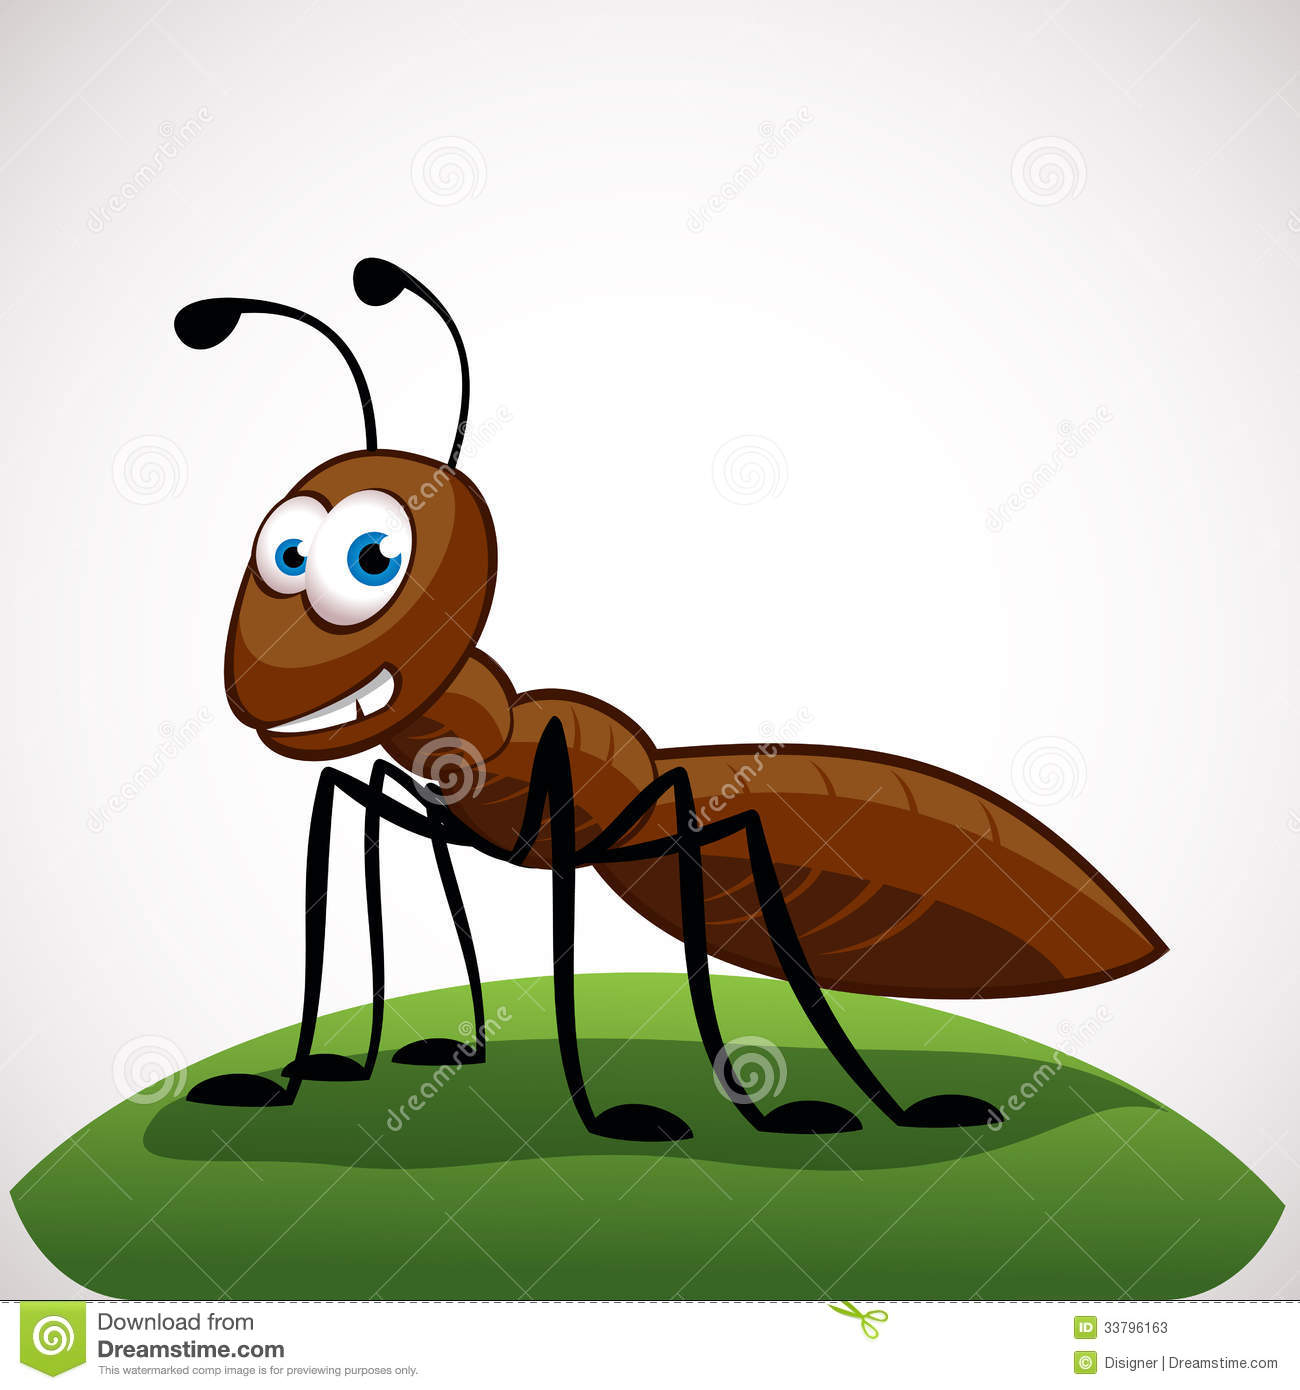 Ant Cartoon Character Stock Photos - Image: 33796163